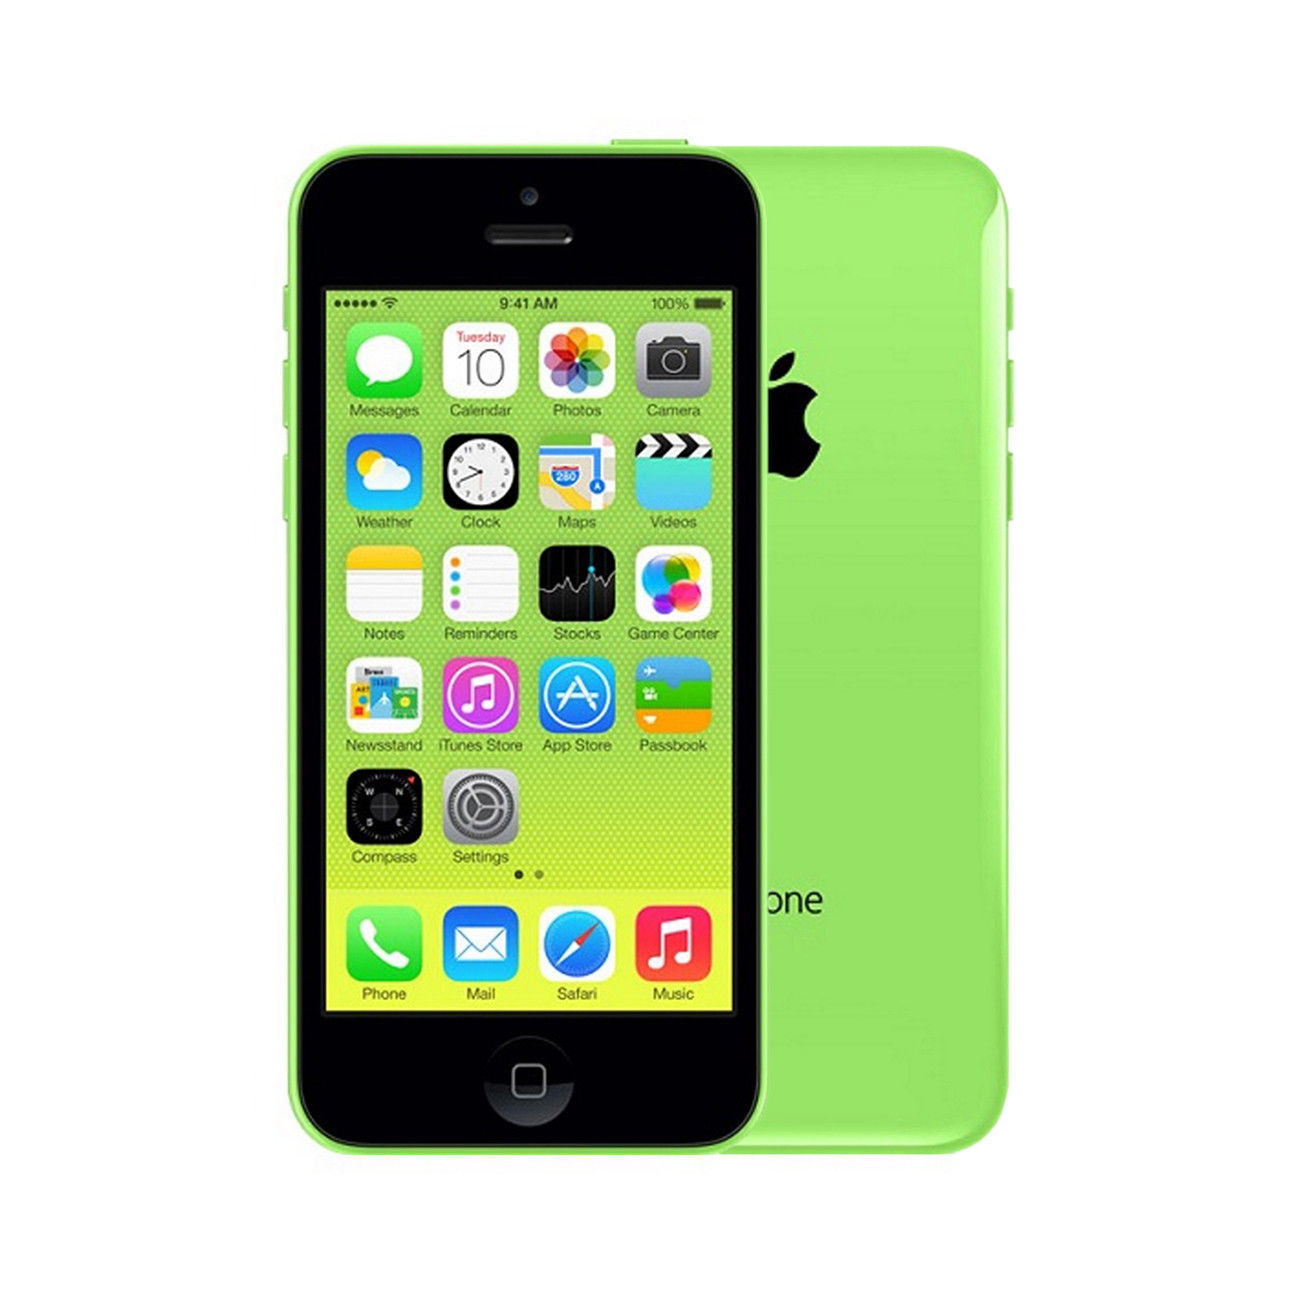 Apple iPhone 5c [16GB] [Green] [Imperfect]